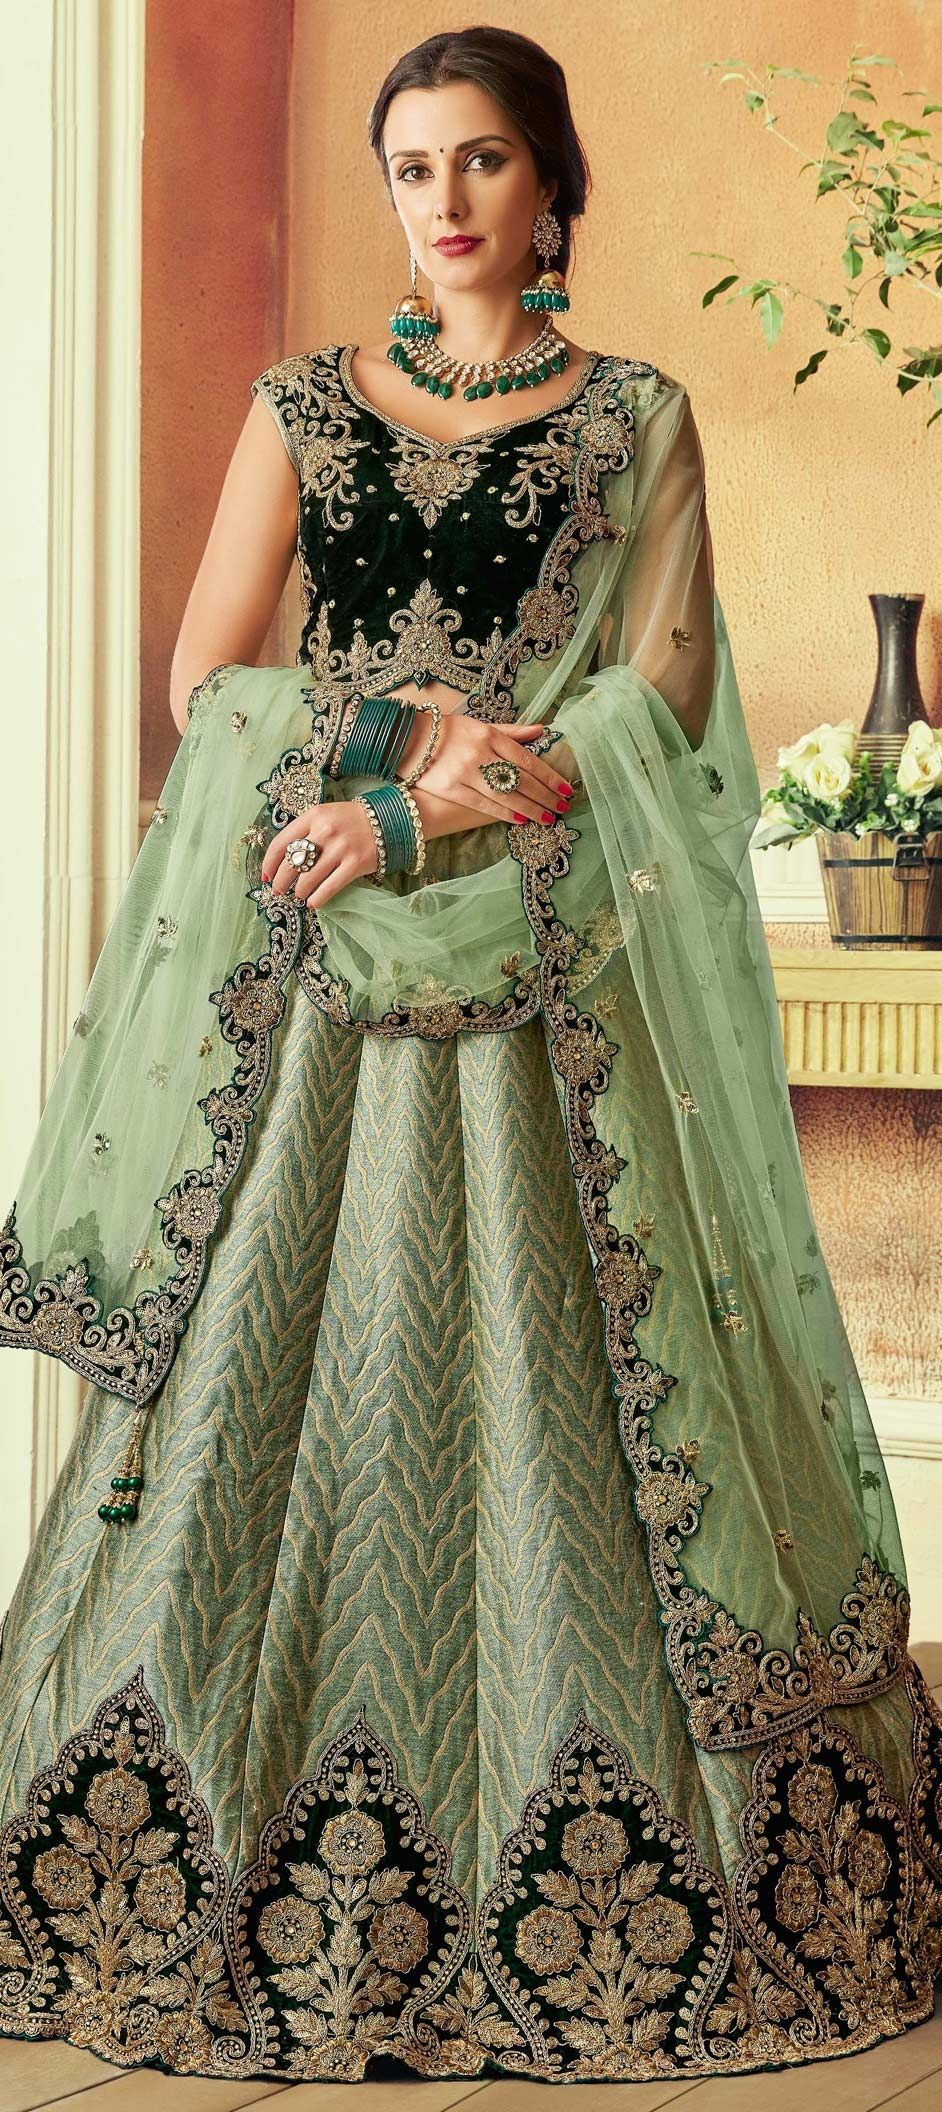 fcc217cdd 1555387: Bridal, Wedding Green color Brocade fabric Lehenga